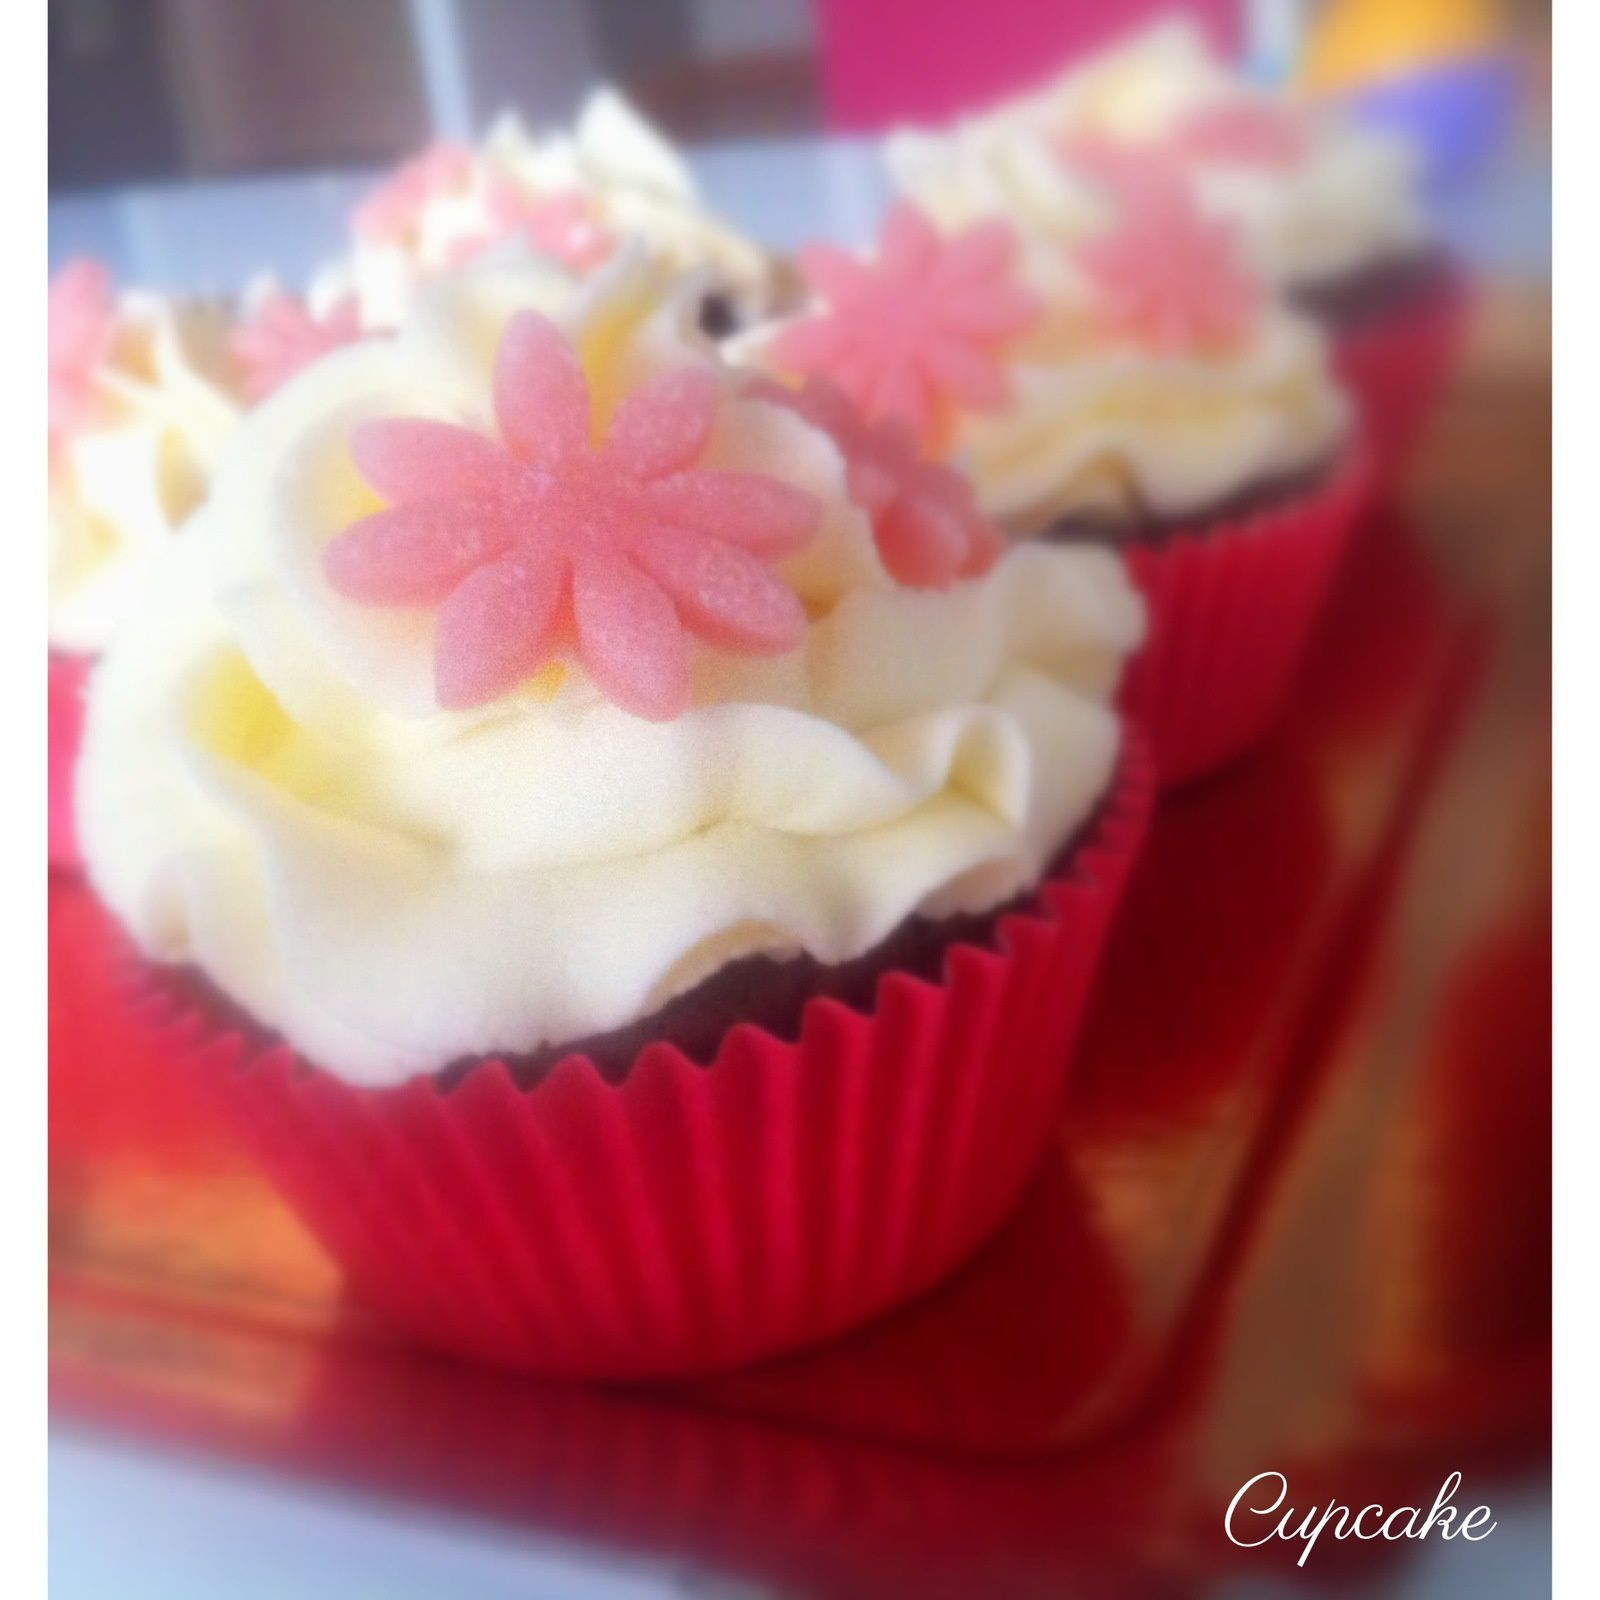 Cupcake Chocolat glaçage Vanille cream cheese ♥